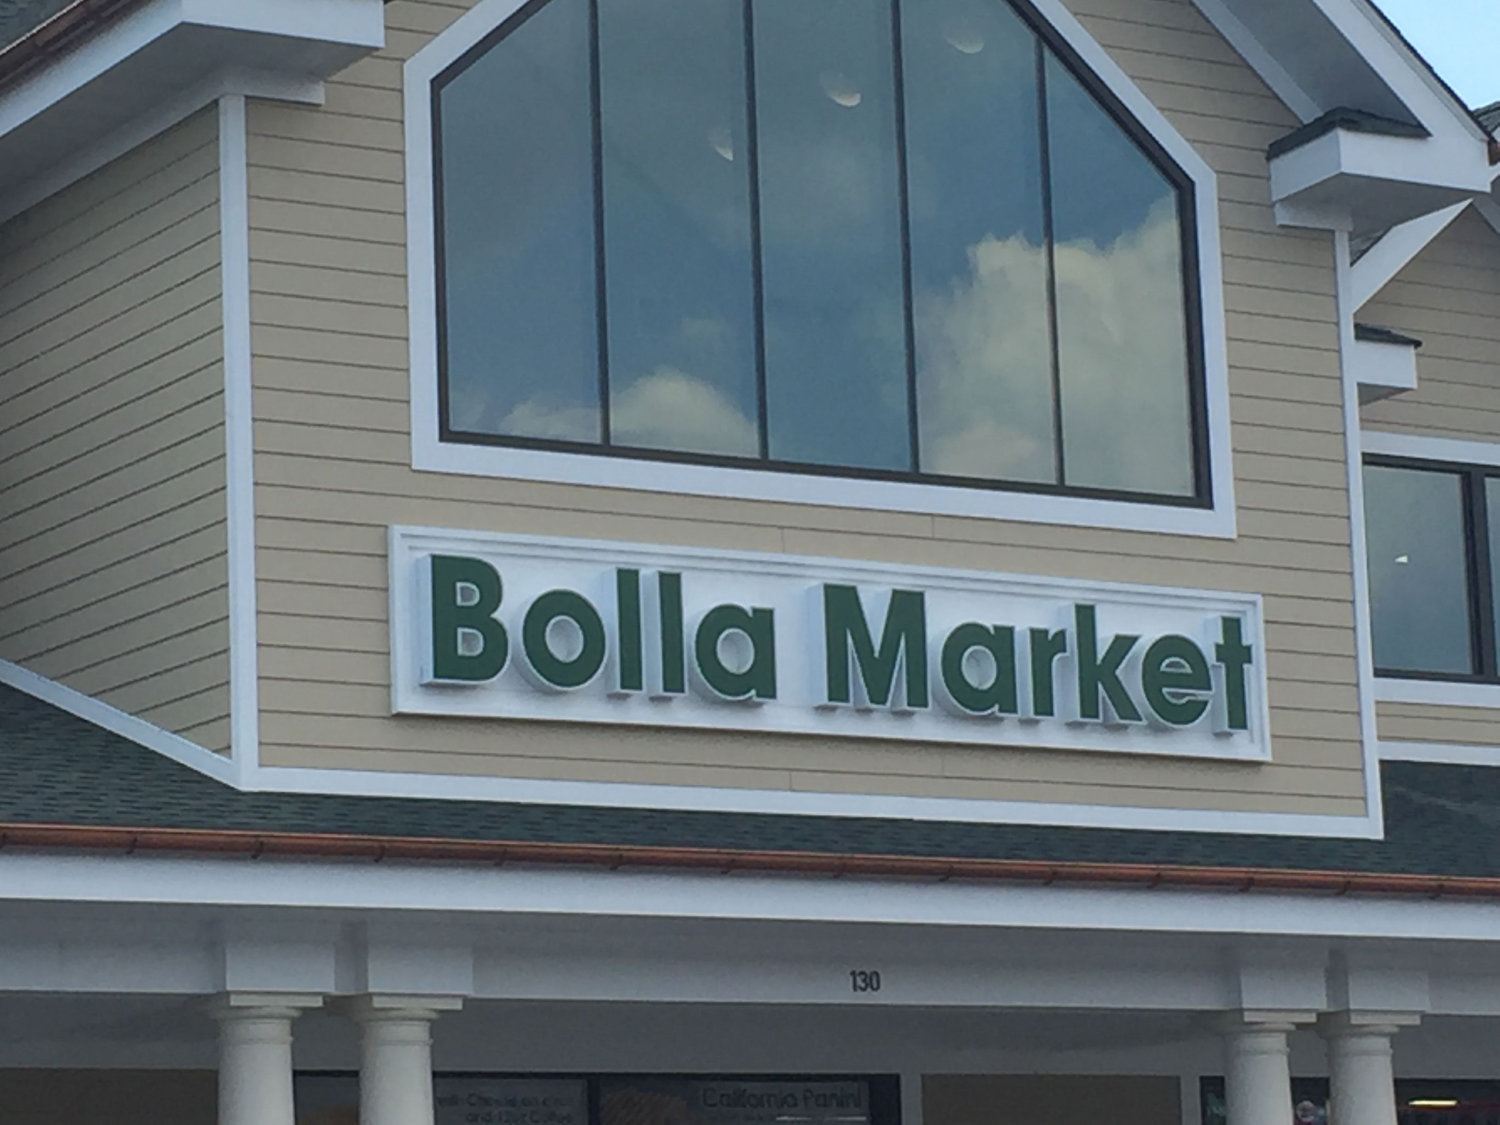 Bolla has stores in New York and New Jersey, and features a level of quality not normally found in gas station convenience stores.